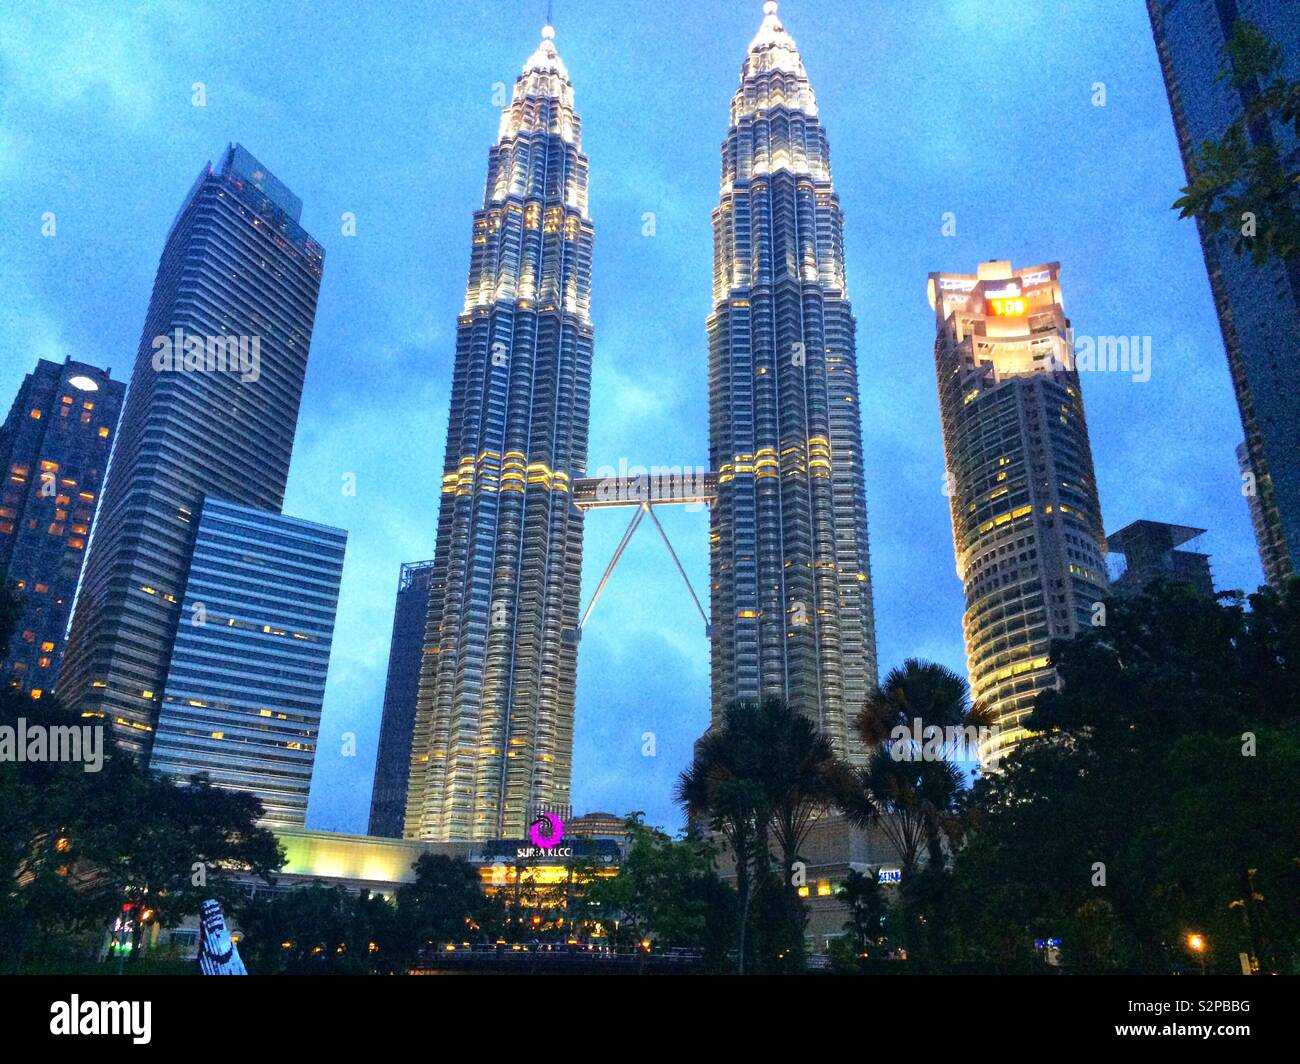 Petronas Towers at dusk - Stock Image